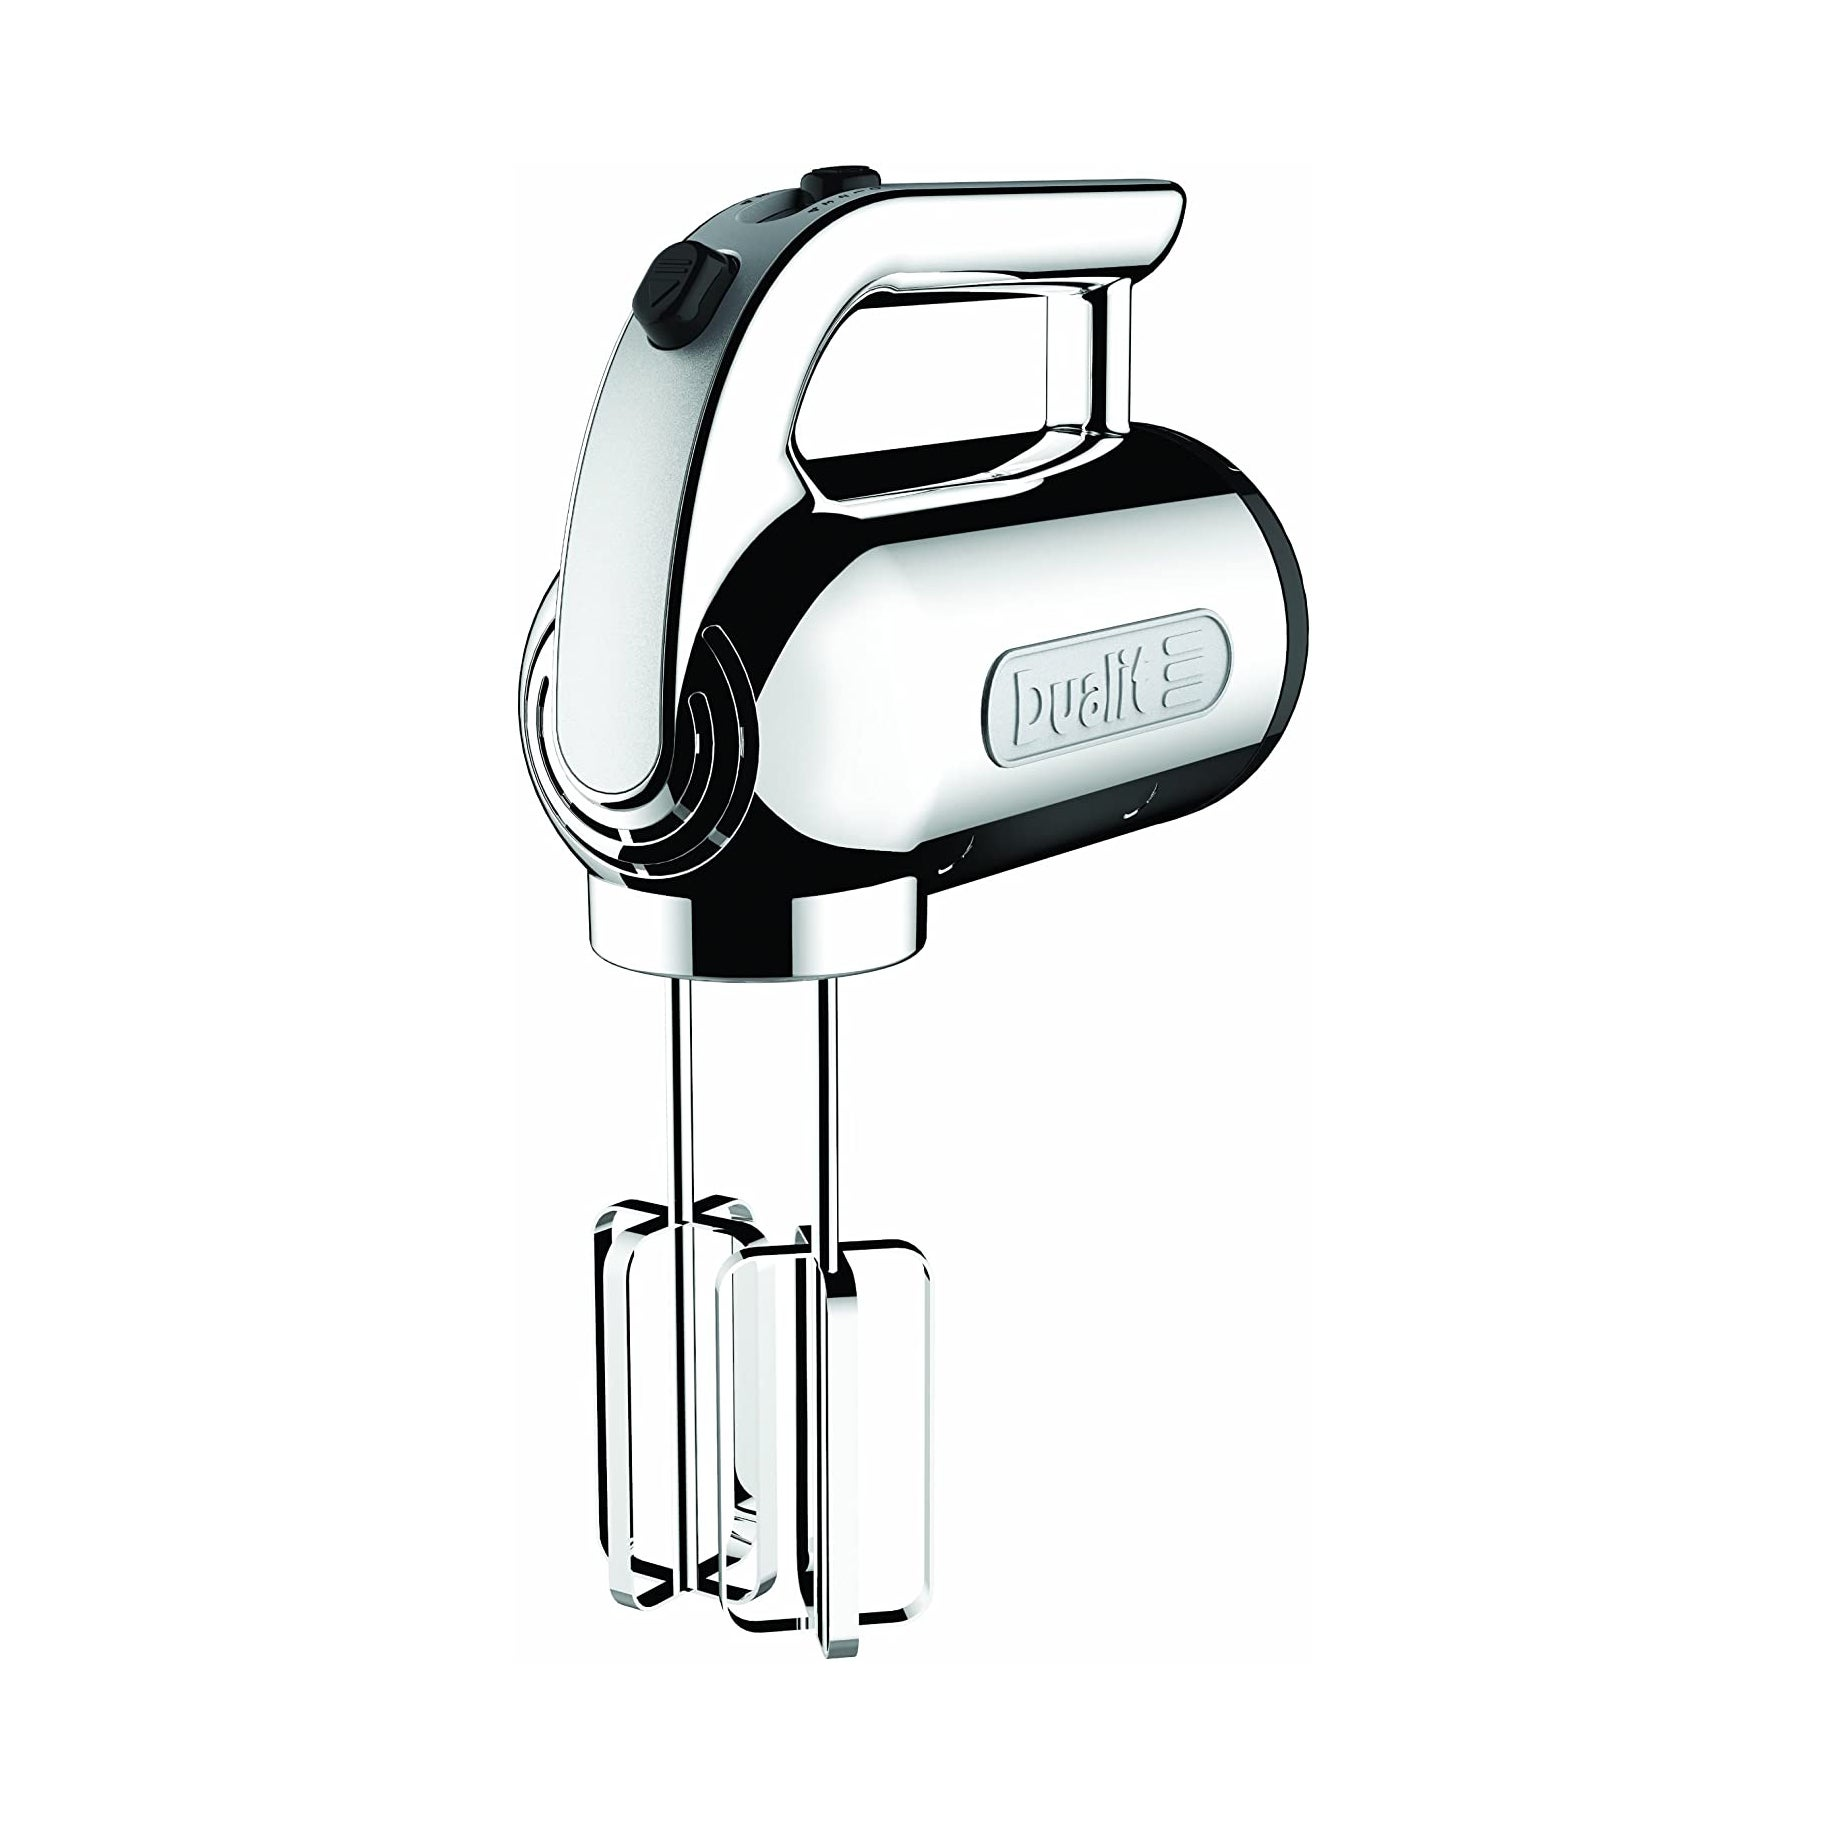 The Best Hand Mixer Option: Dualit Professional Hand Mixer